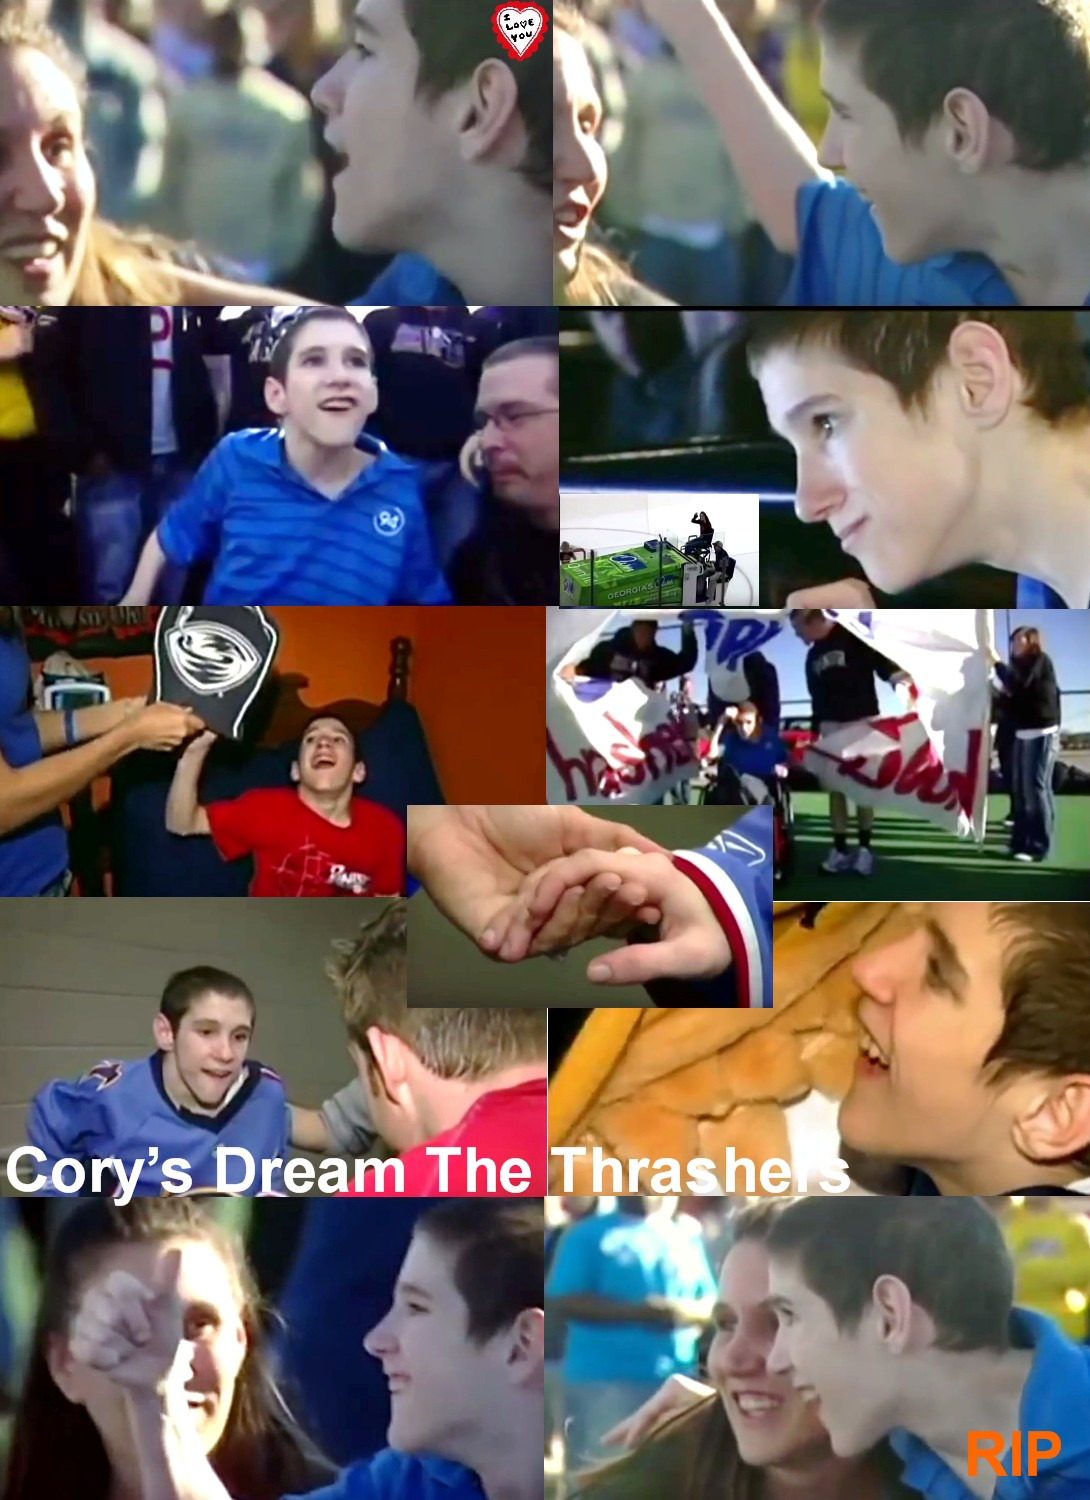 cory's thrashers dream.jpg